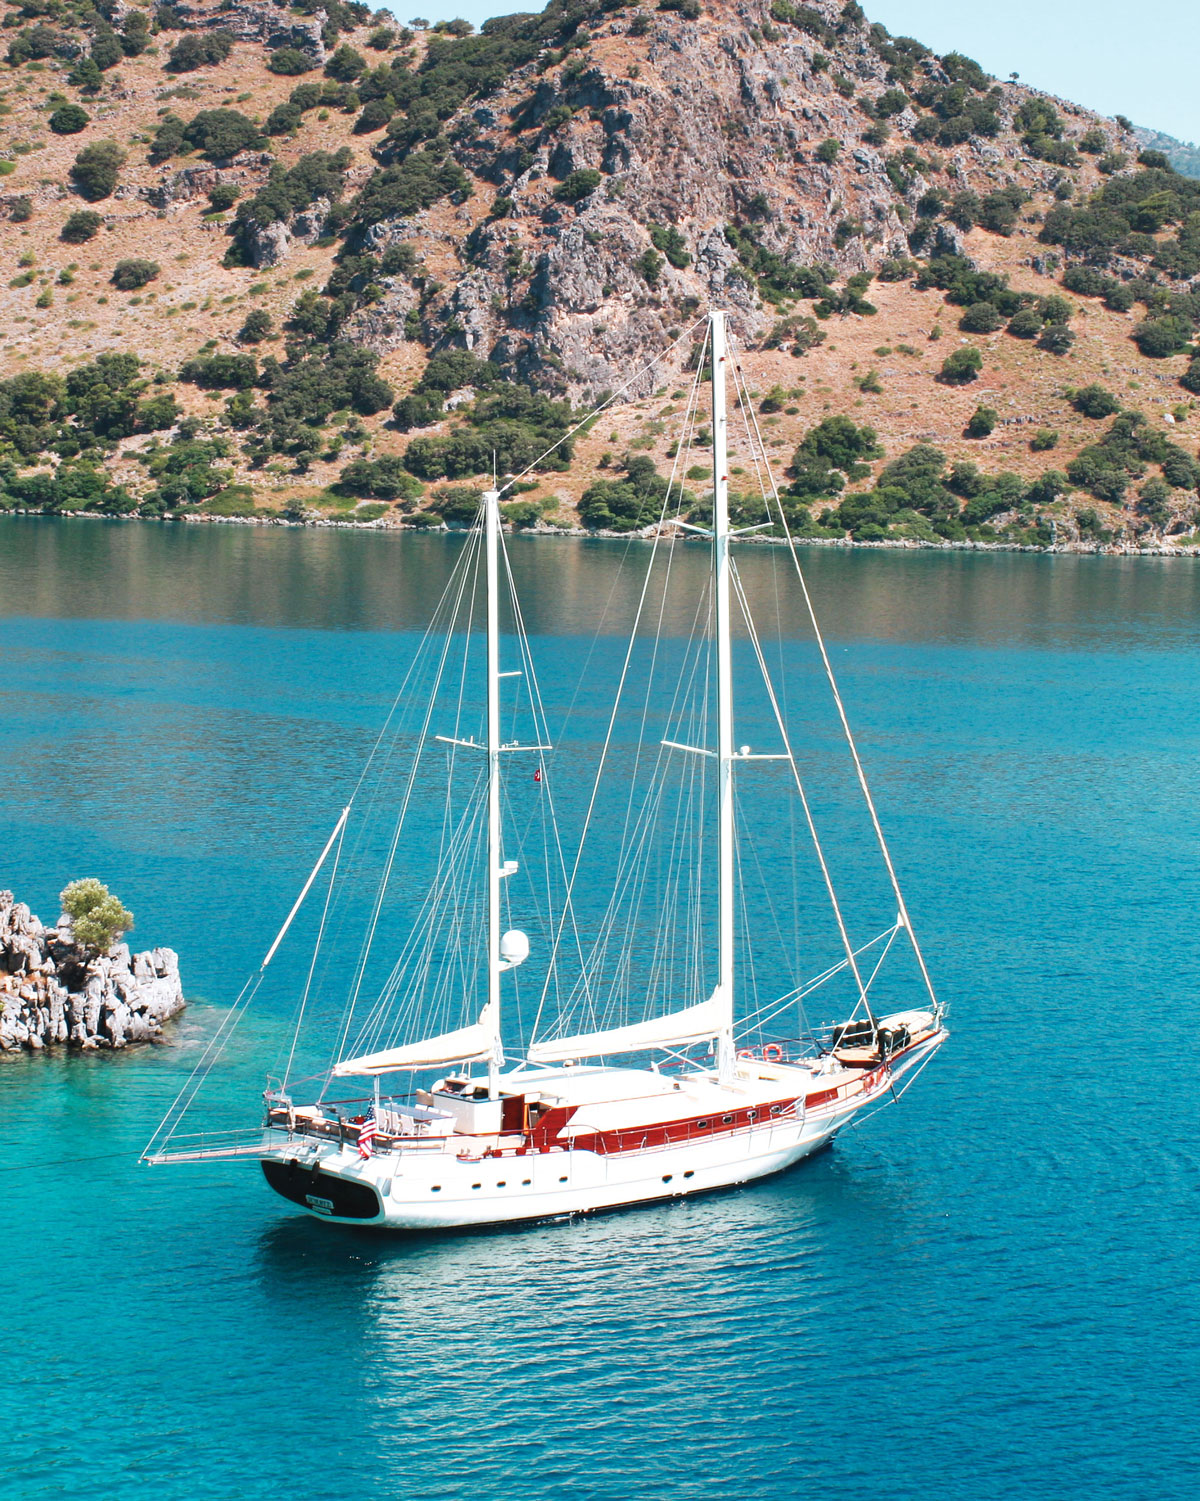 great-escapes-cruise-turkey-sail-boat-s112741.jpg